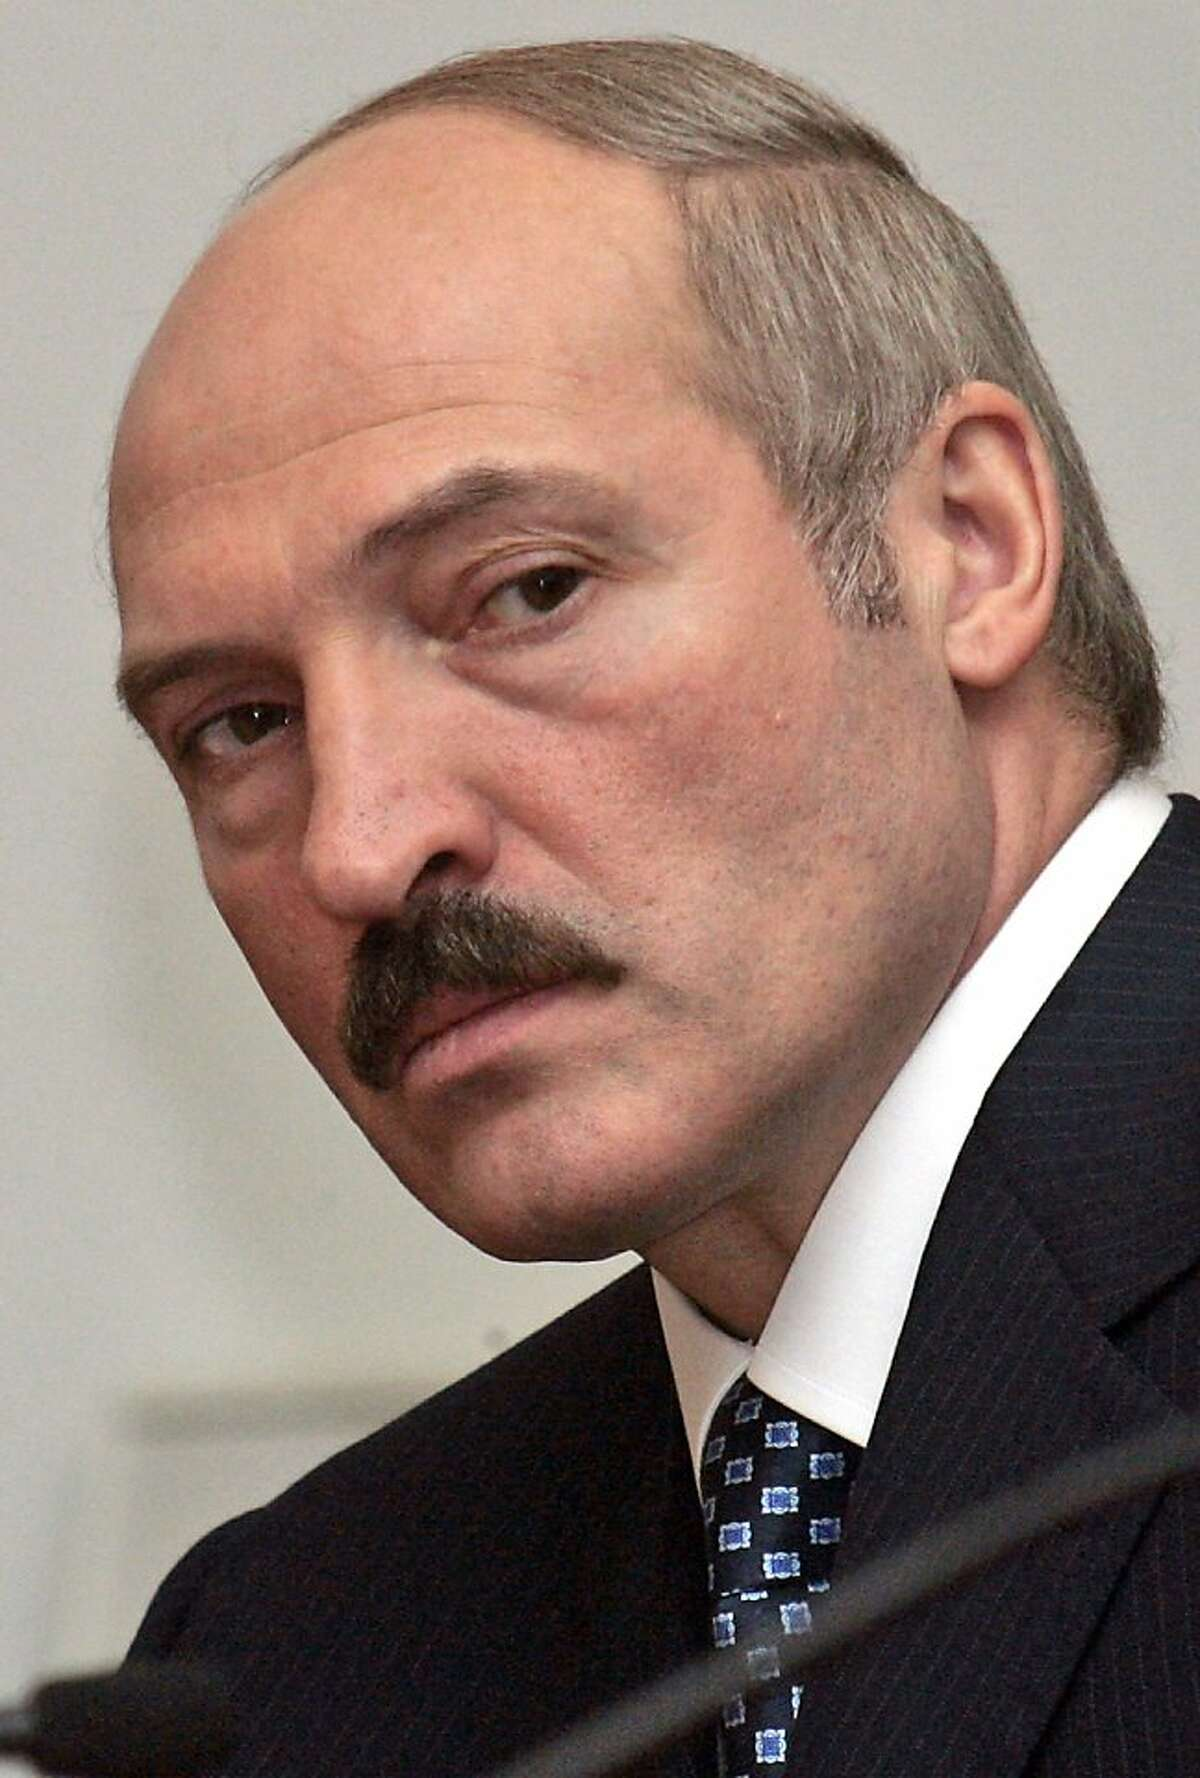 Belarusian President Alexander Lukashenko looks on at a news conference after a summit of the Eurasian Economic Community in St. Petersburg, Russia, in this Wednesday, Jan. 25, 2006, file photo. With just hours to go before a threatened cutoff of natural gas to Belarus, Russia's gas monopoly and Belarusian officials on Sunday resumed tense talks over Russia's demand for a 125-percent rate hike. The politically charged dispute reflects strained relations between Belarus and Russia, whose close ties go back centuries but have been increasingly tense in recent years as Russian President Vladimir Putin's Kremlin has apparently tired of providing political and economic support for Lukashenko.